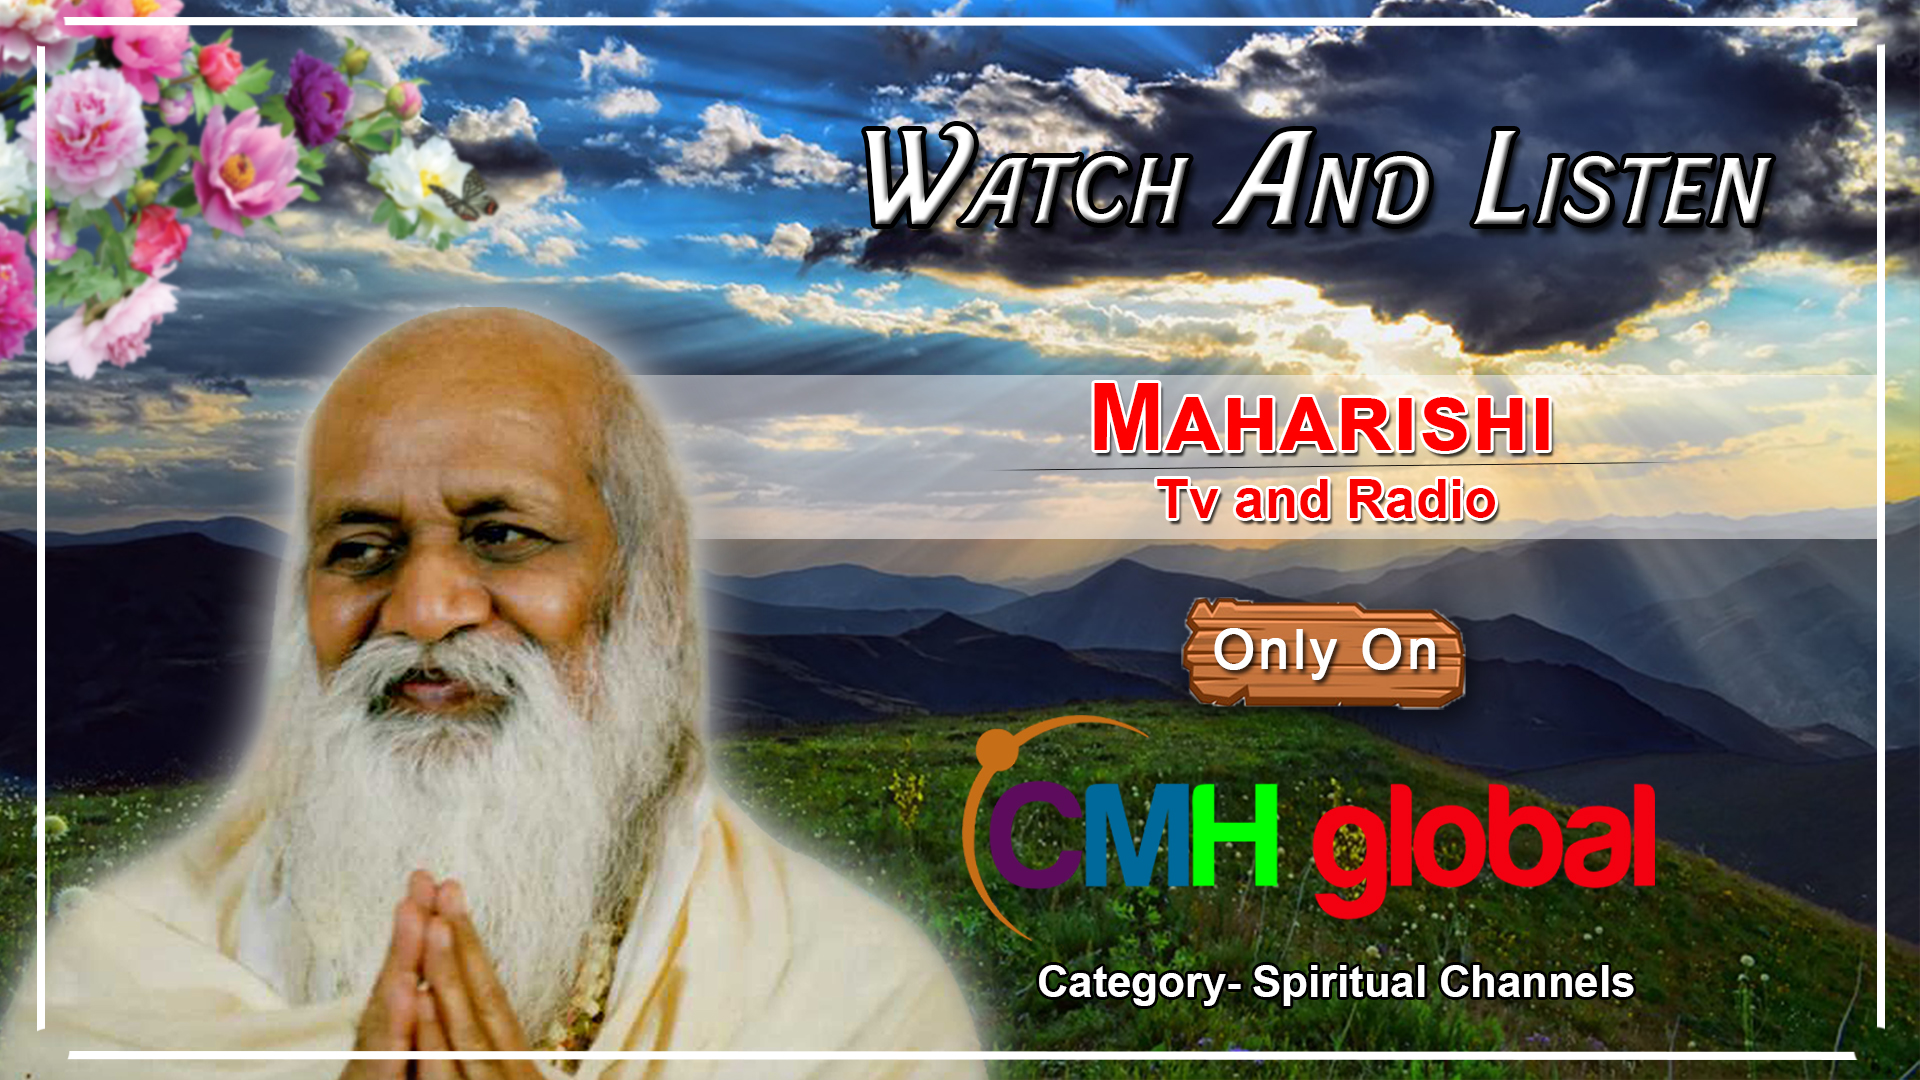 Maharishi world peace celebration